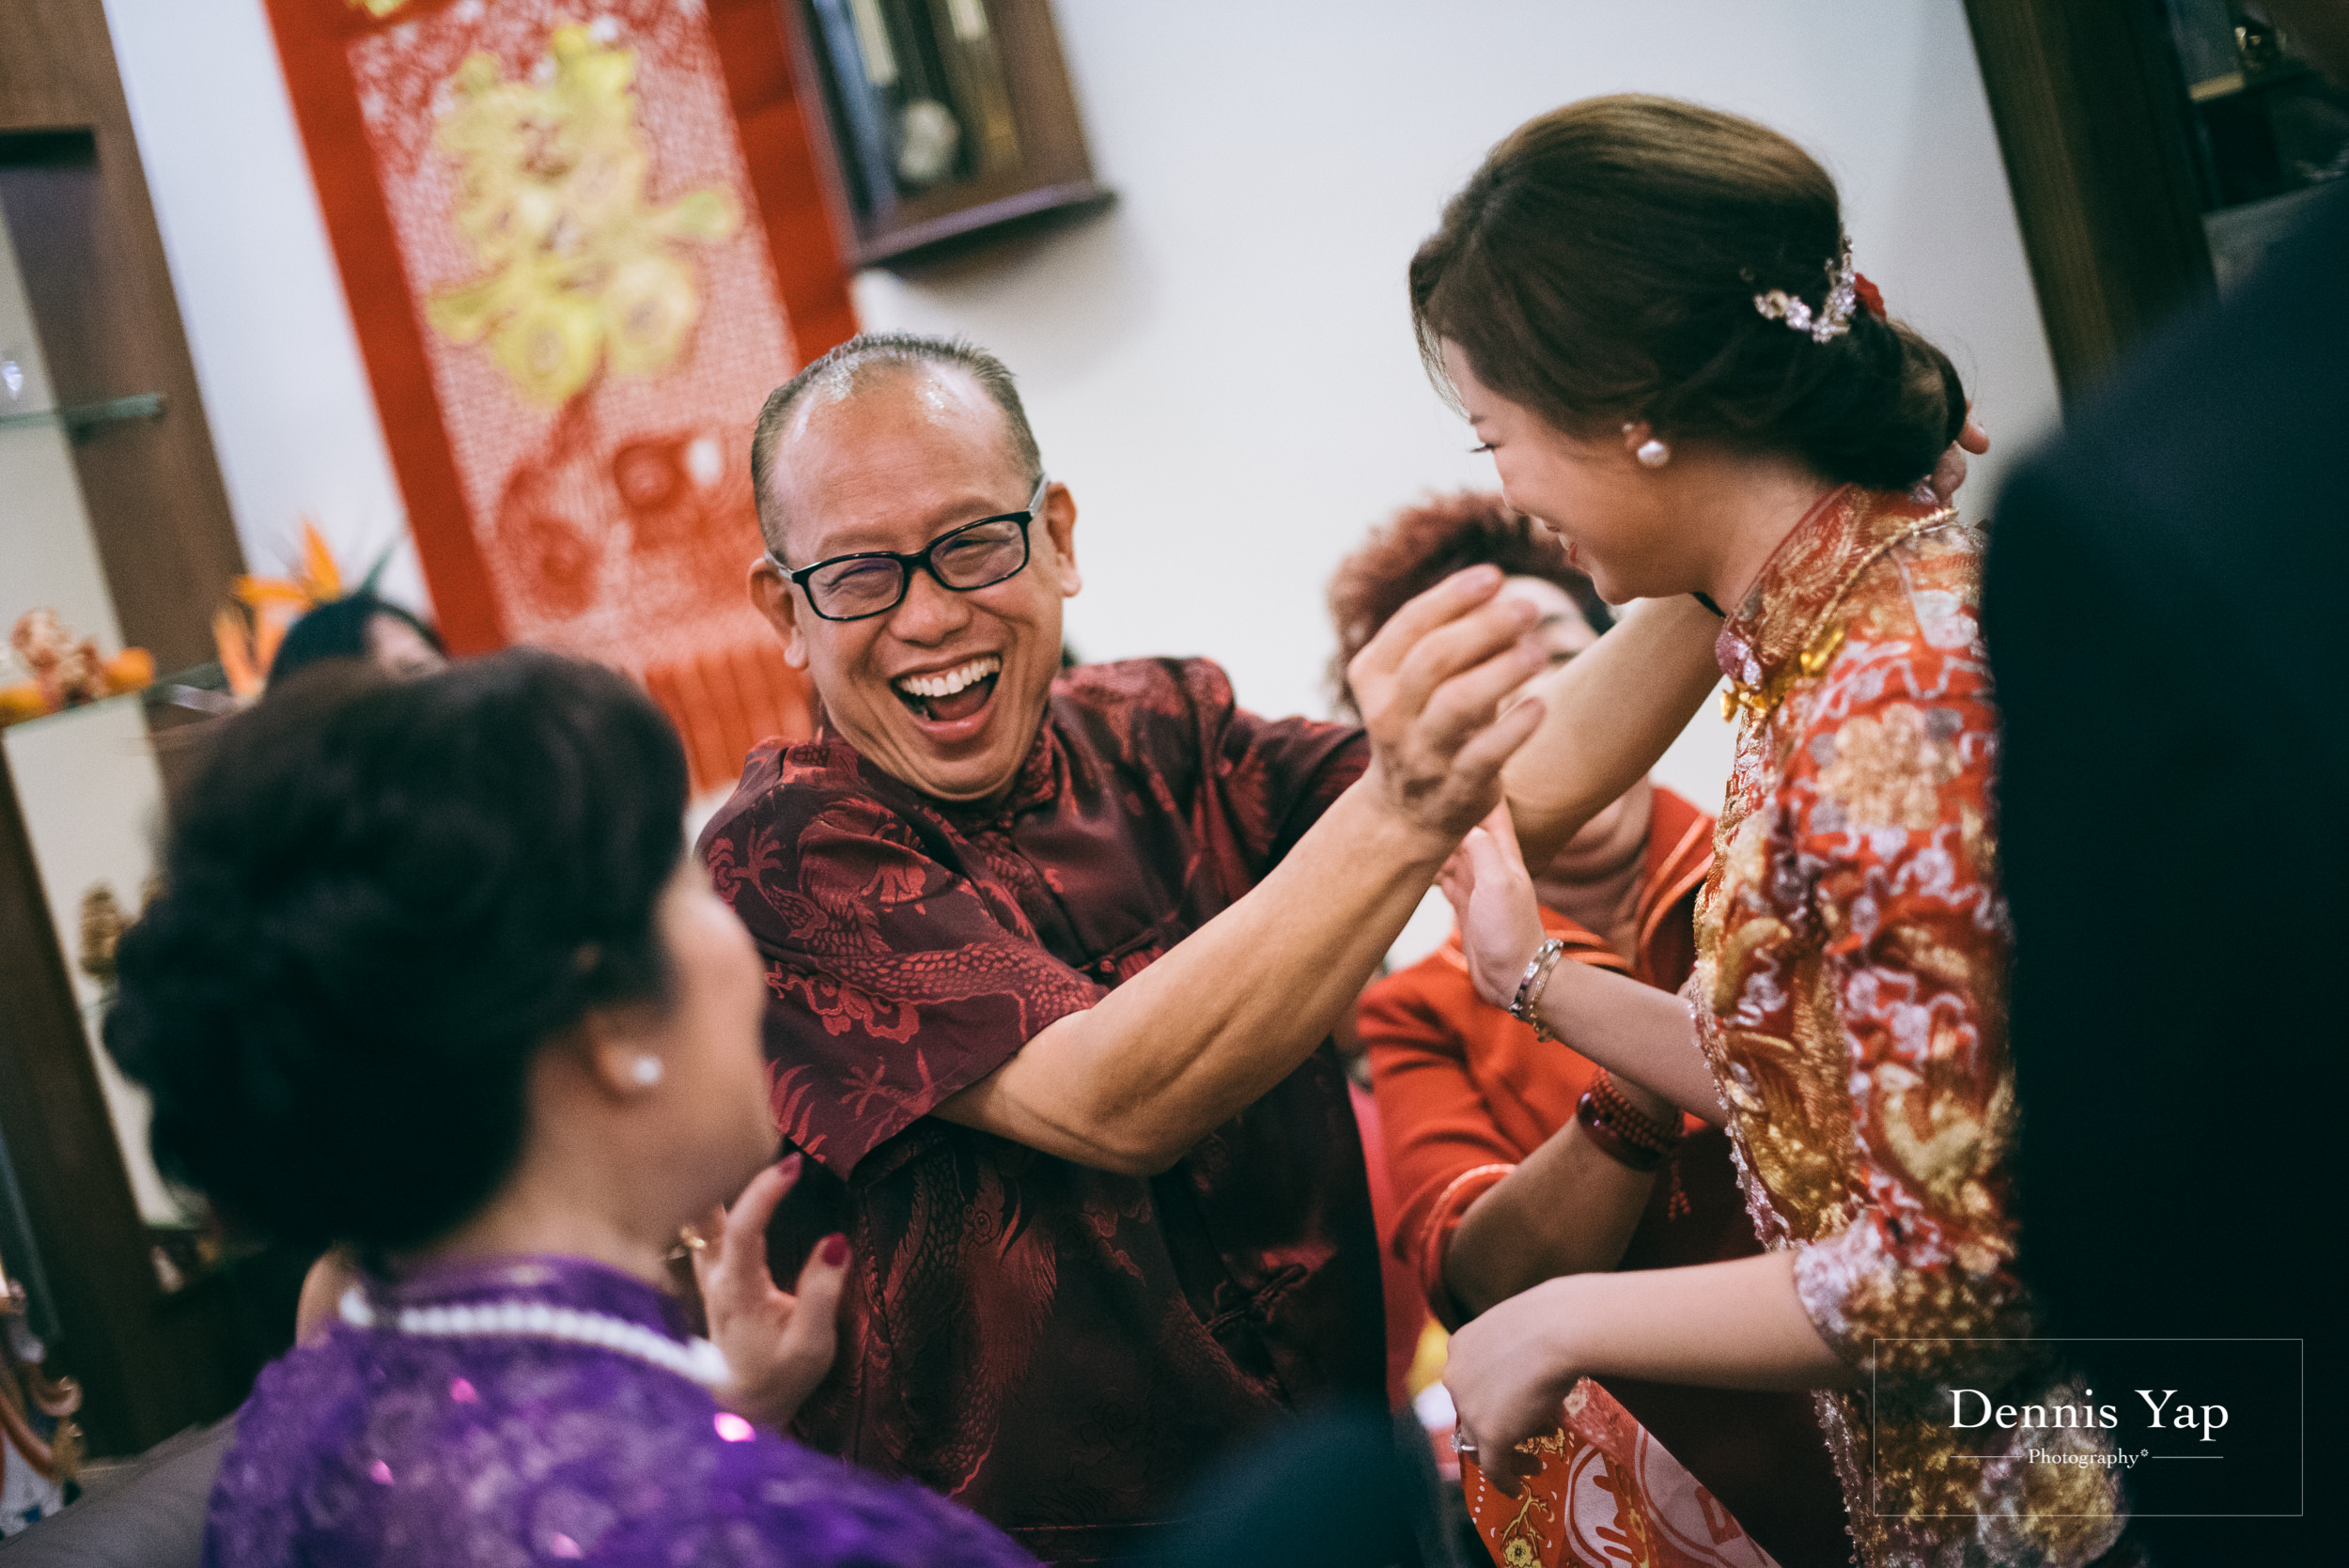 edmond erica tea ceremony kuala lumpur dennis yap photography chinese traditional happy-16.jpg